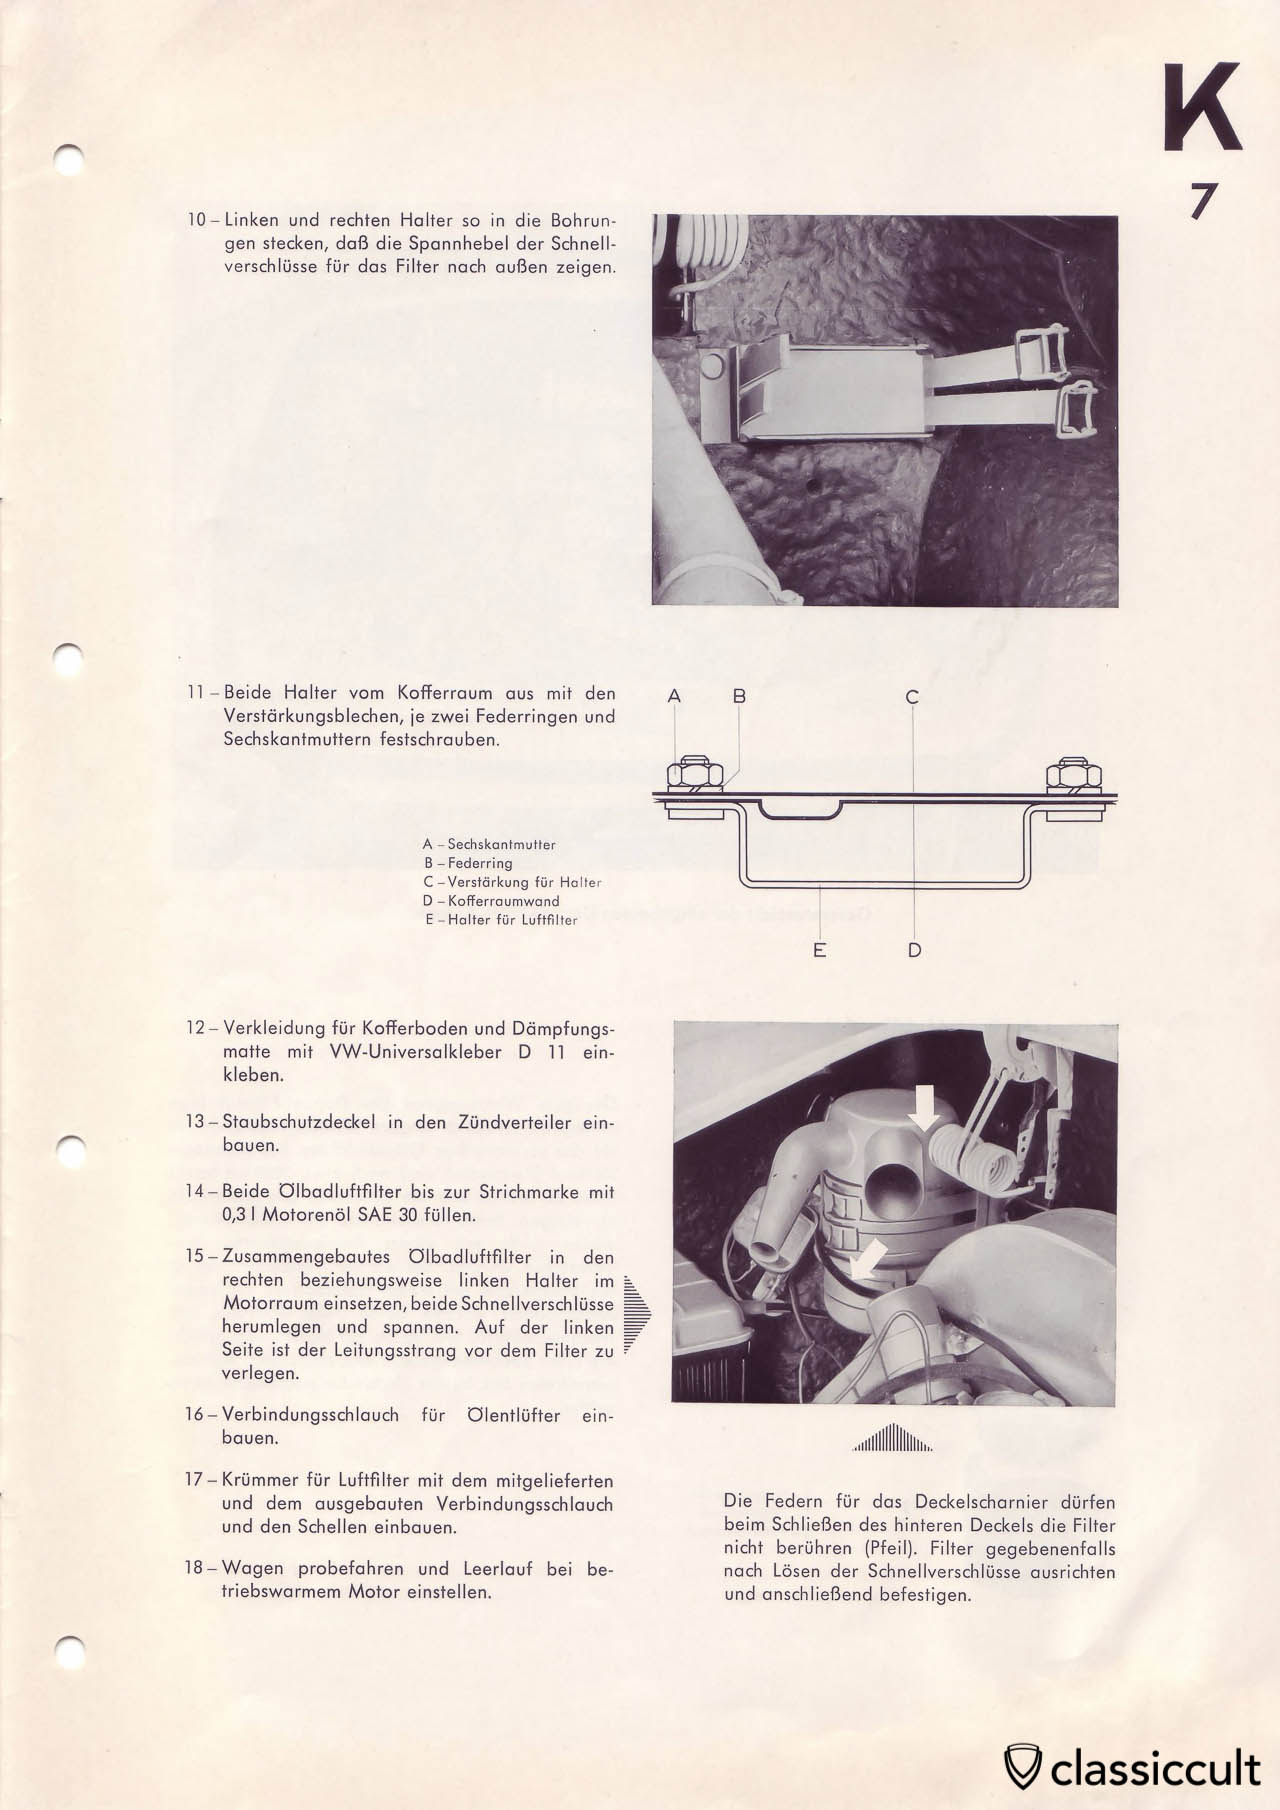 Mounting instructions for the dusty conditions air cleaner in Karmann Ghia.